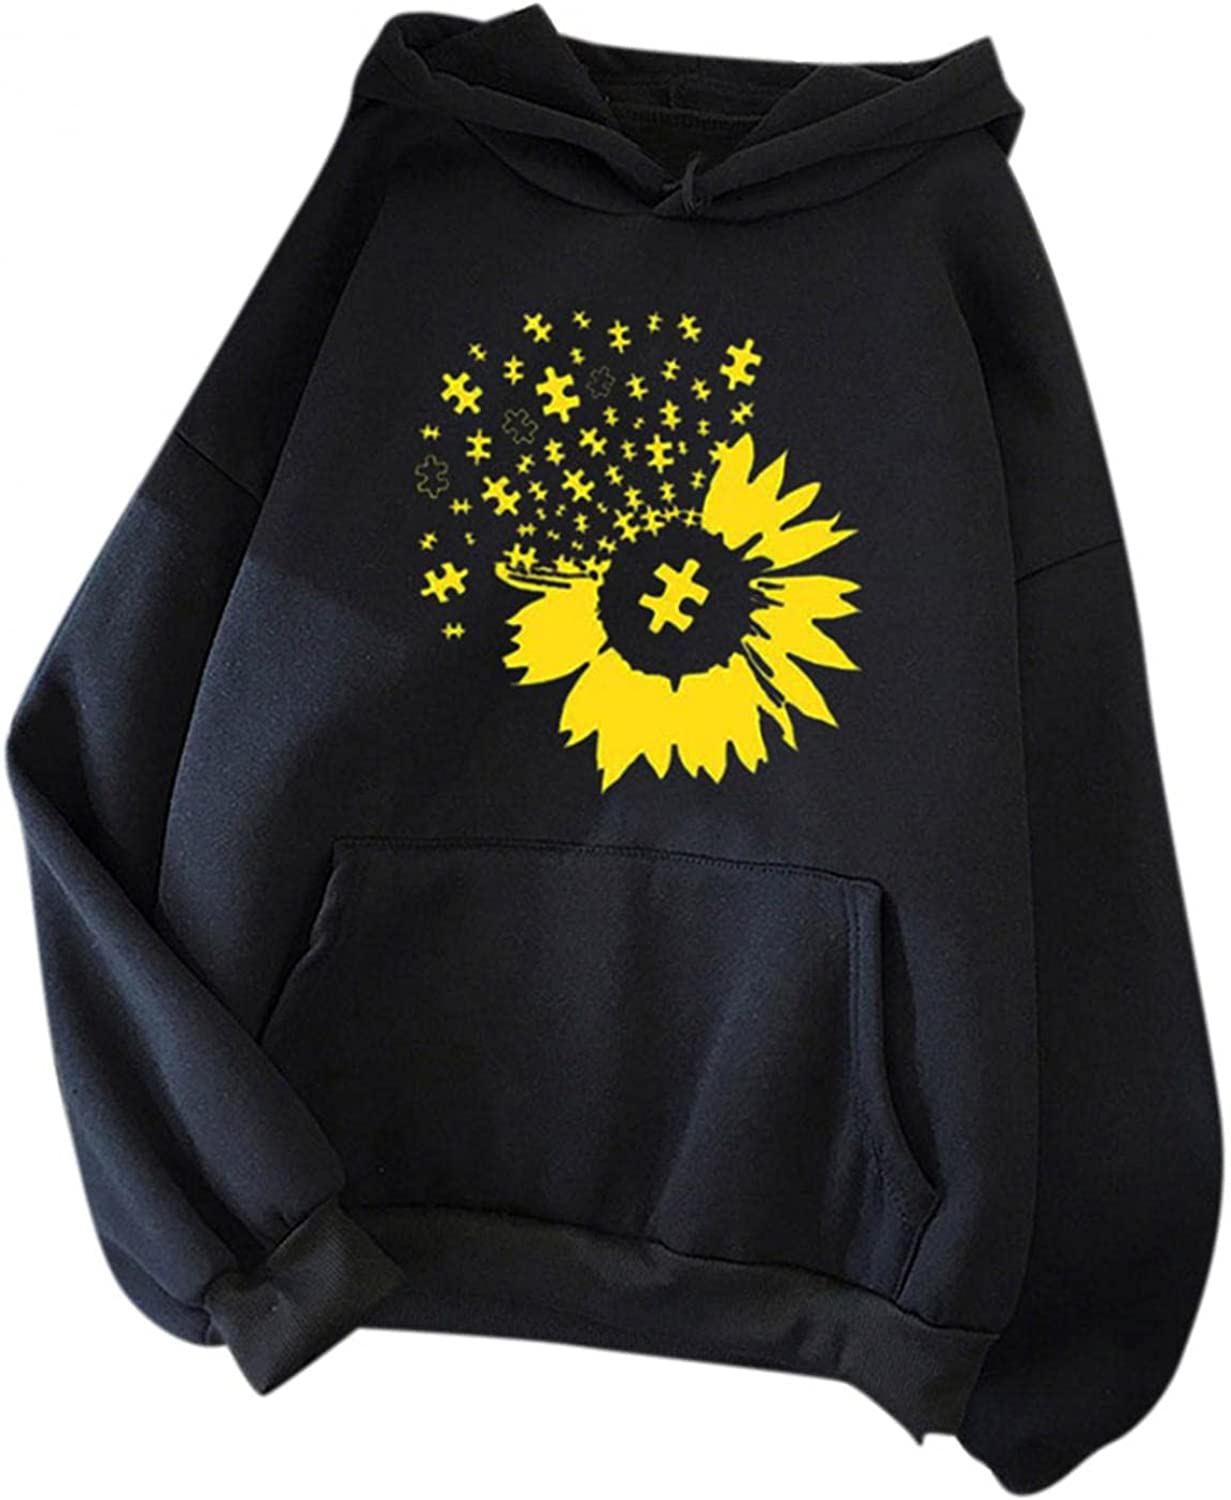 UOCUFY Hoodies for Women, Long Sleeve Pullover Hoodies Autumn and Winter Plus Size Womens Sweatshirts Cute Printing